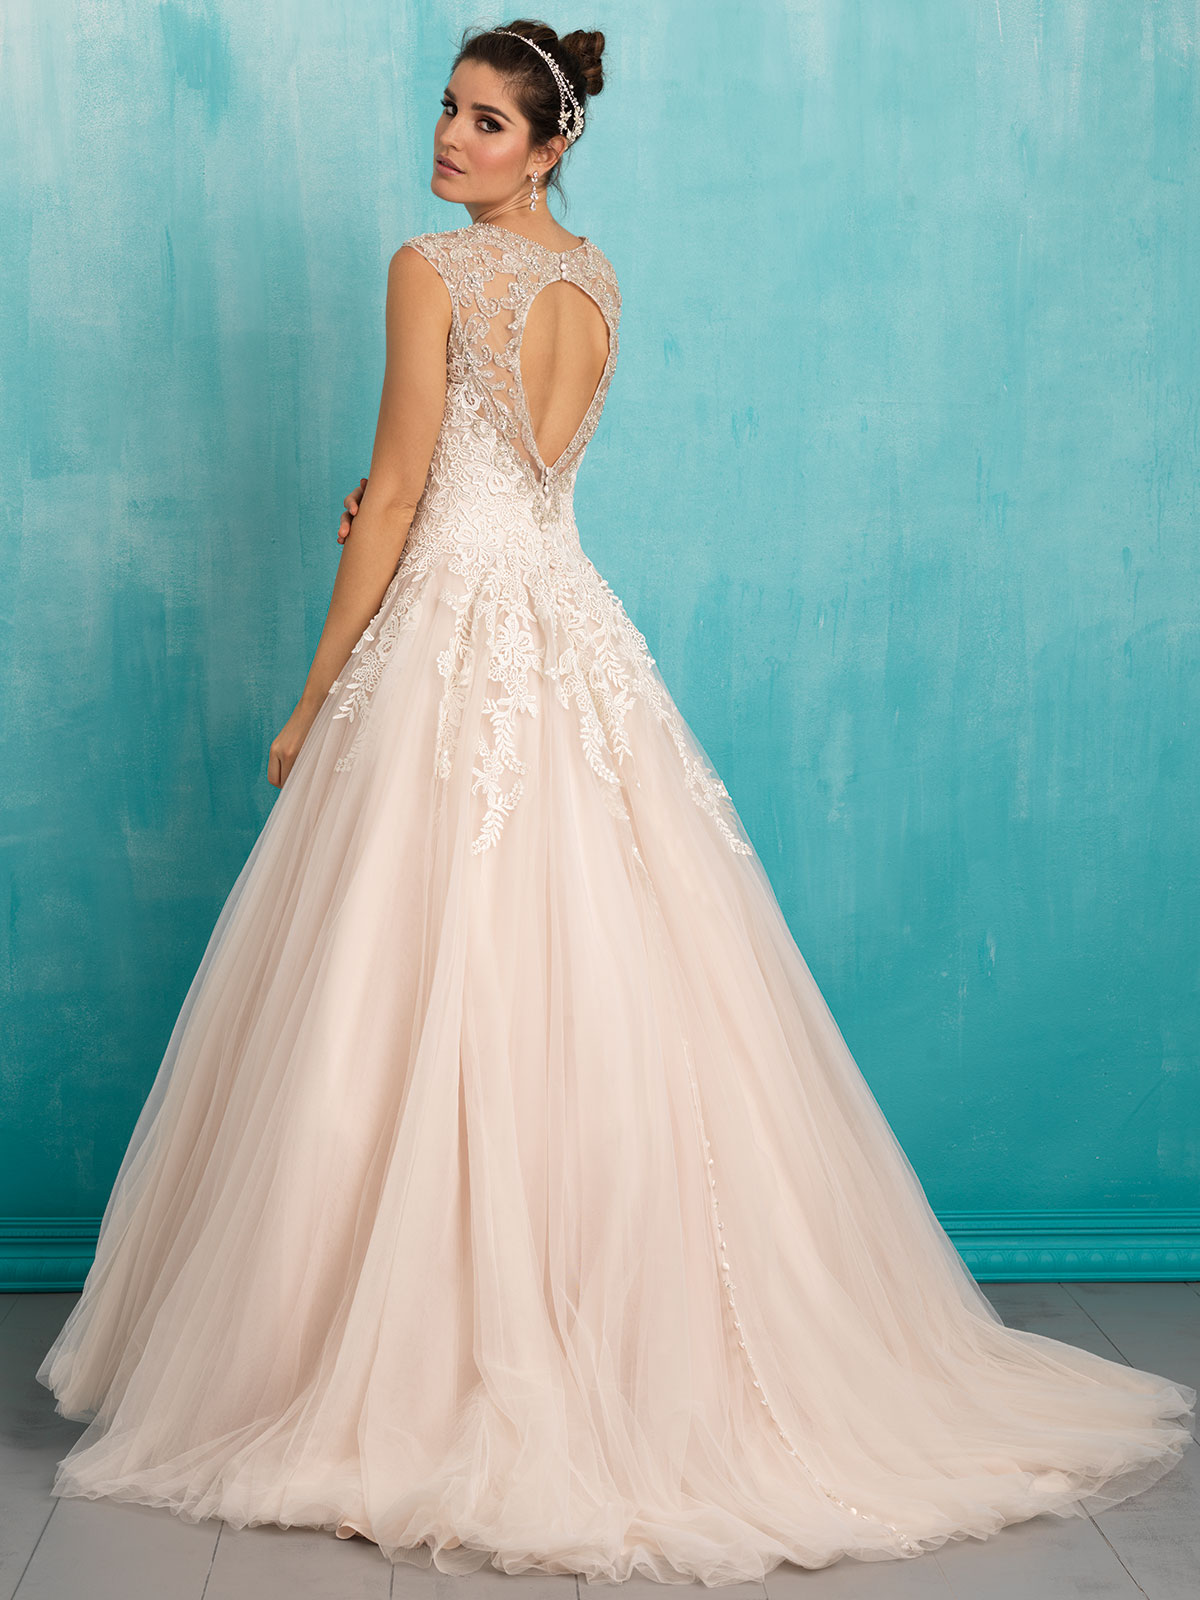 Allure 9323 English Net Ball Gown Bridal Dress|DimitraDesigns.com